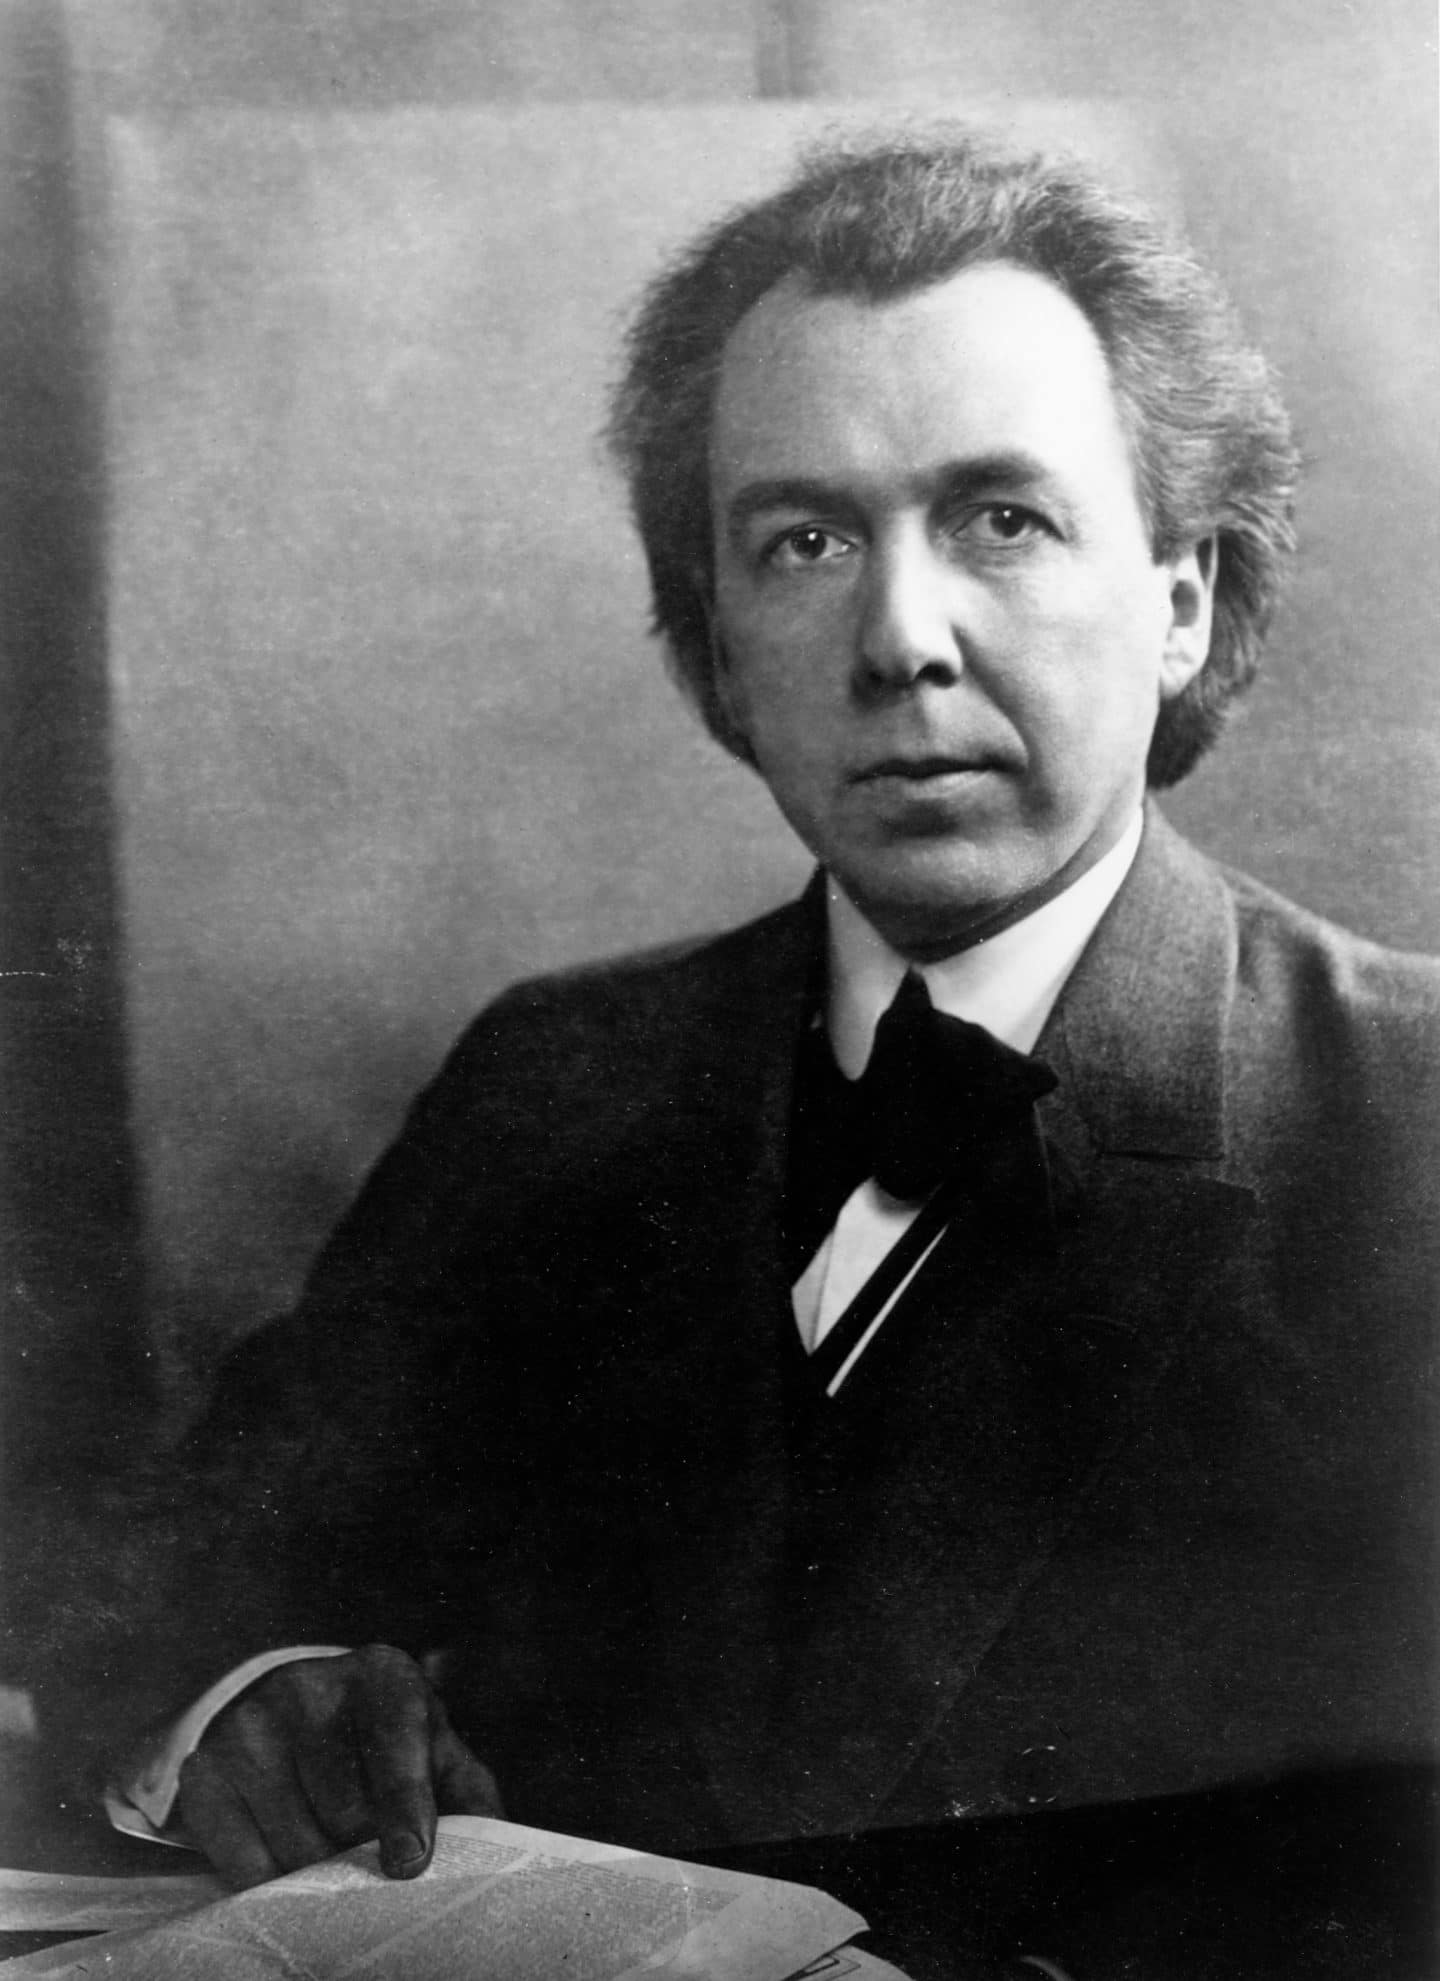 What's believed to be a self portrait of architect Frank Lloyd Wright,  via the Frank Lloyd Wright Foundation